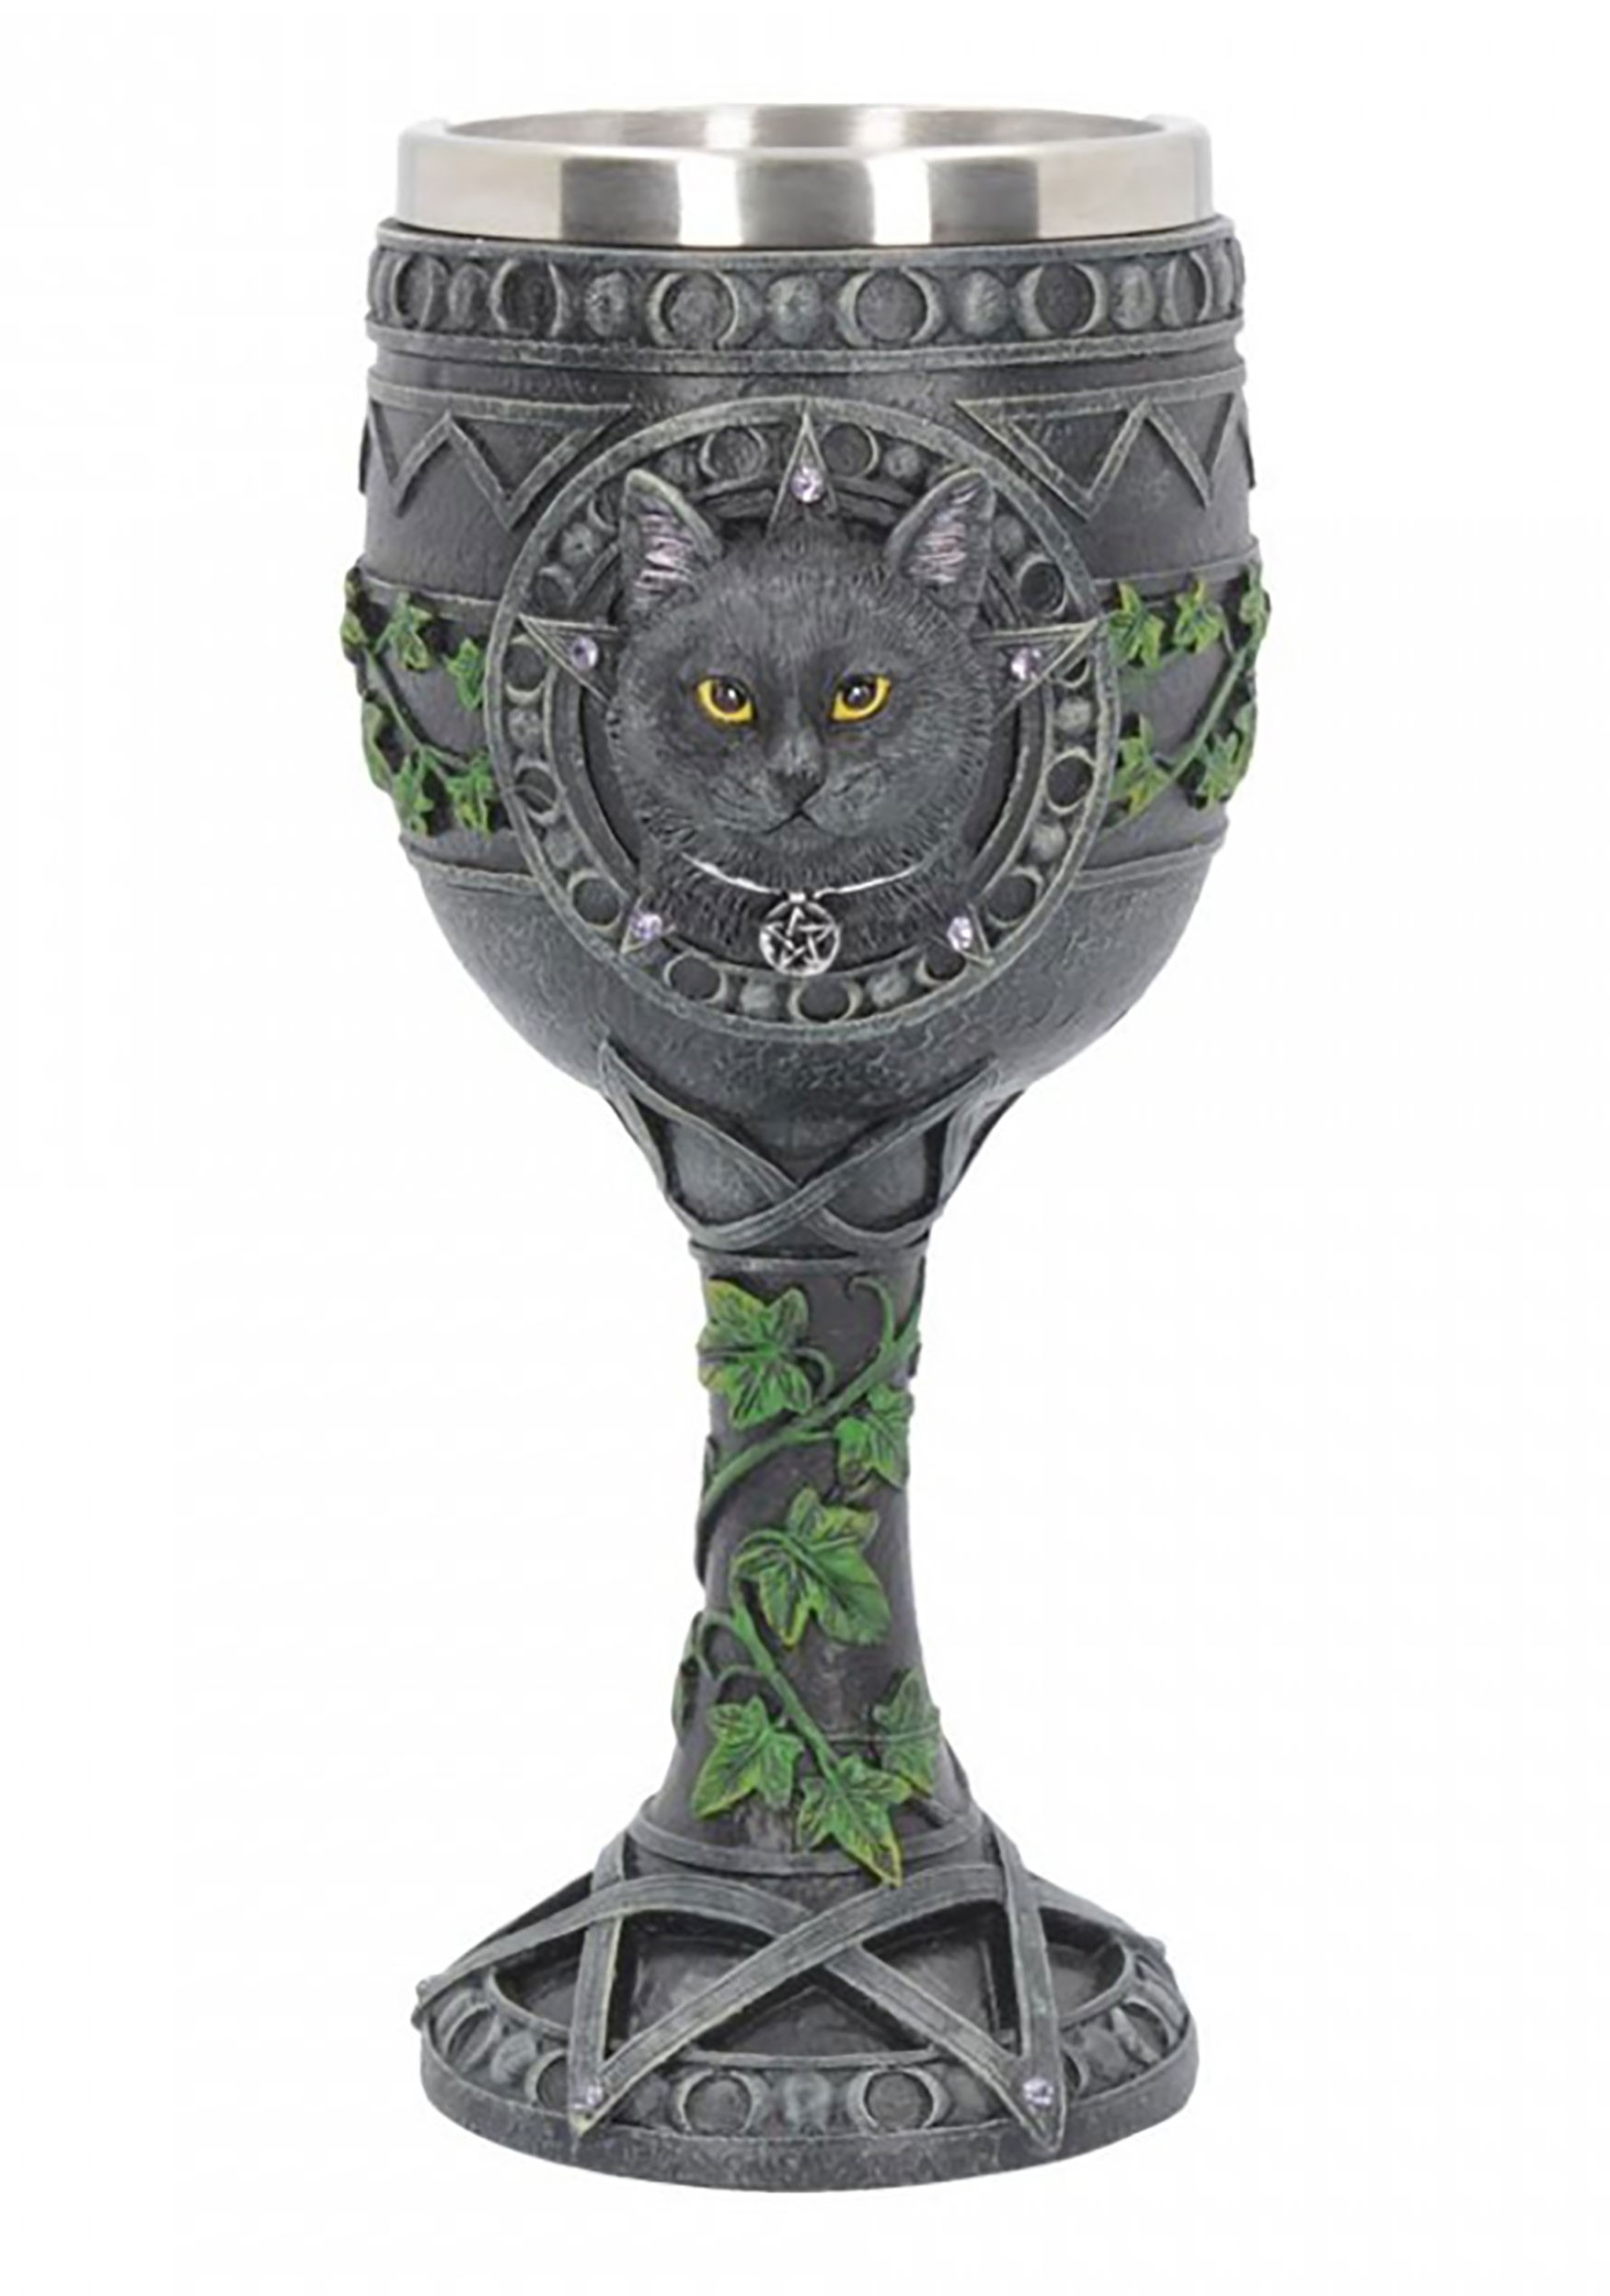 One Cat Goblet 18cm The Charmed